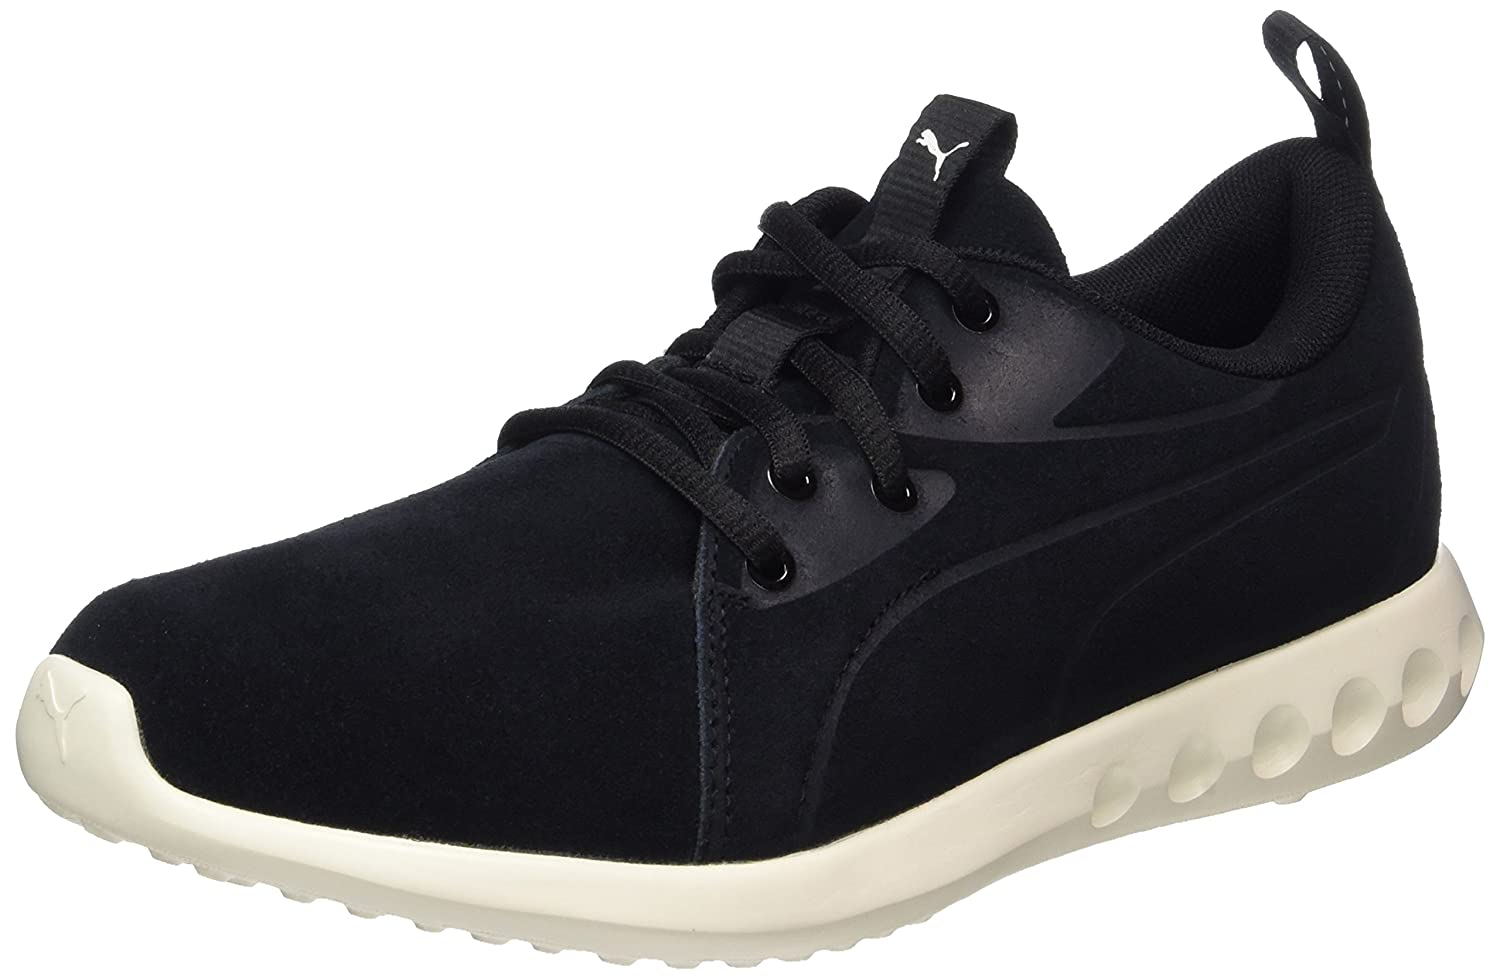 Puma Unisex-Erwachsene Carson Carson Carson 2 Molded Suede Outdoor Fitnessschuhe 132bea